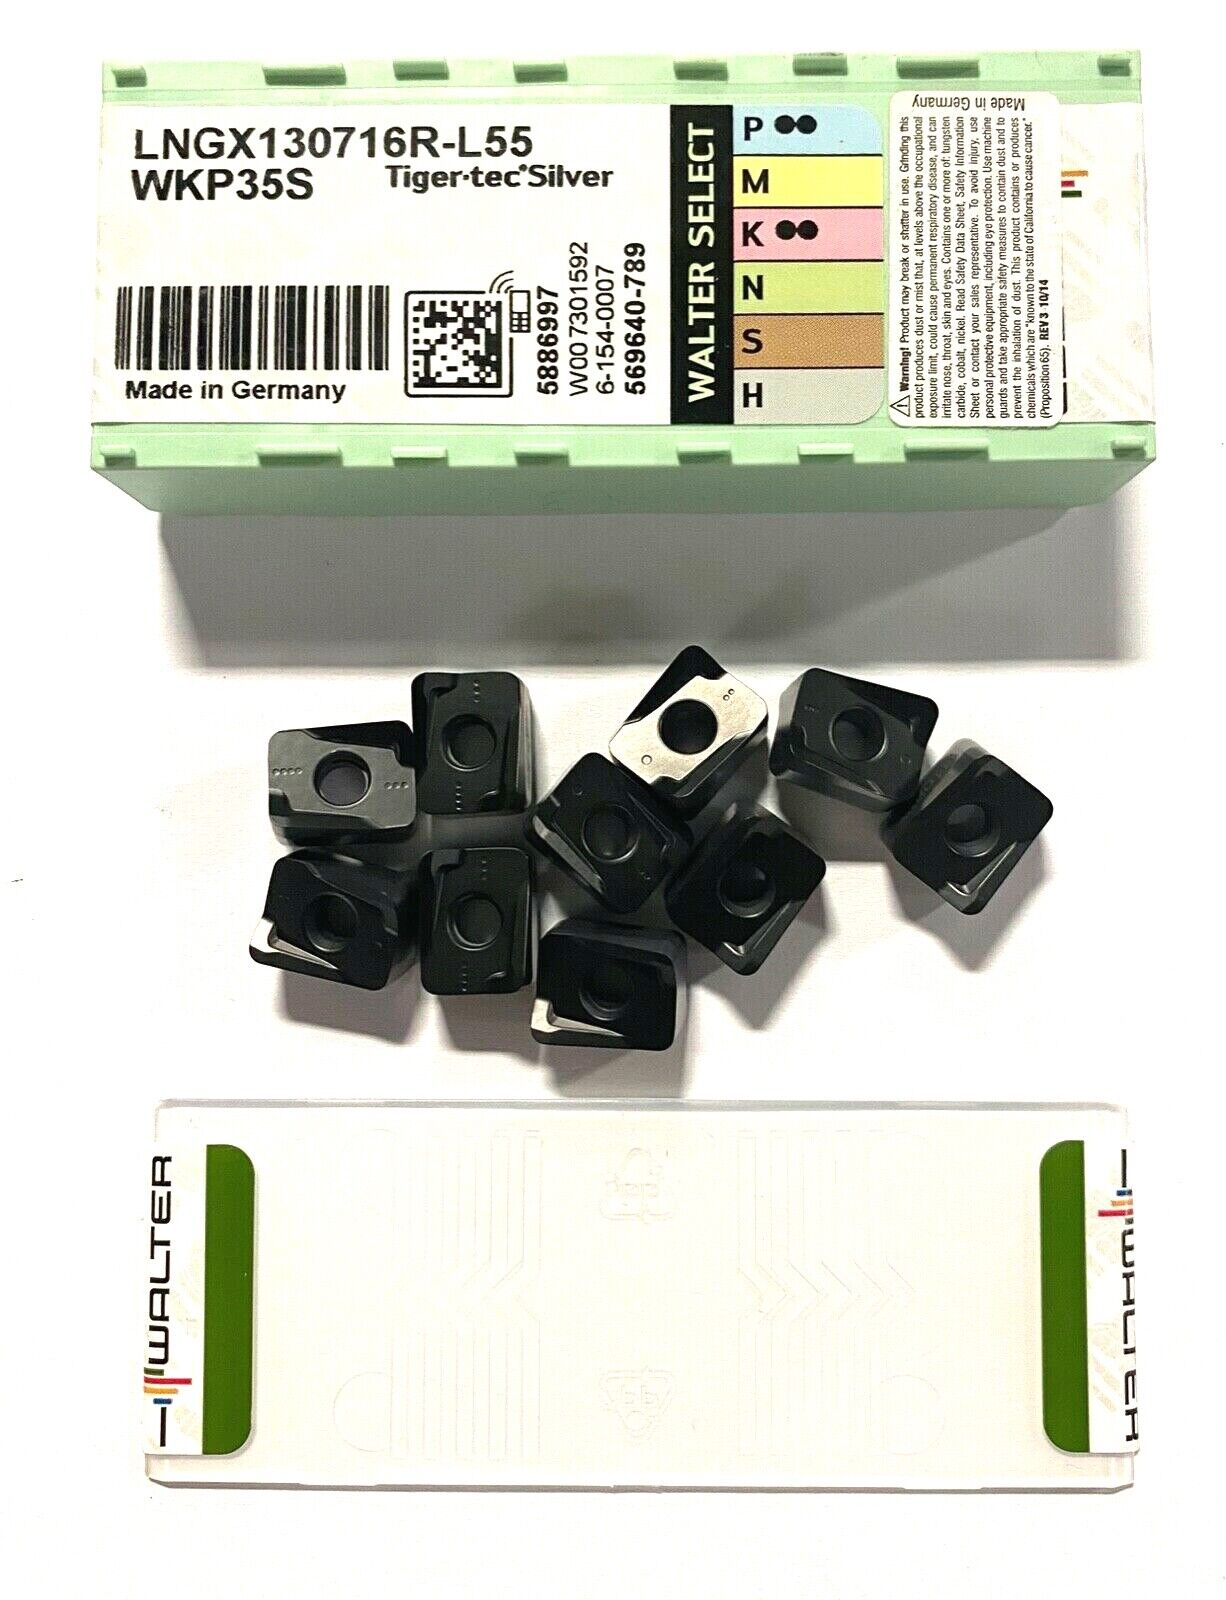 New-Old-Stock Carbide Inserts Walter P29460-0 WXH15 *** Pack of 10 ***